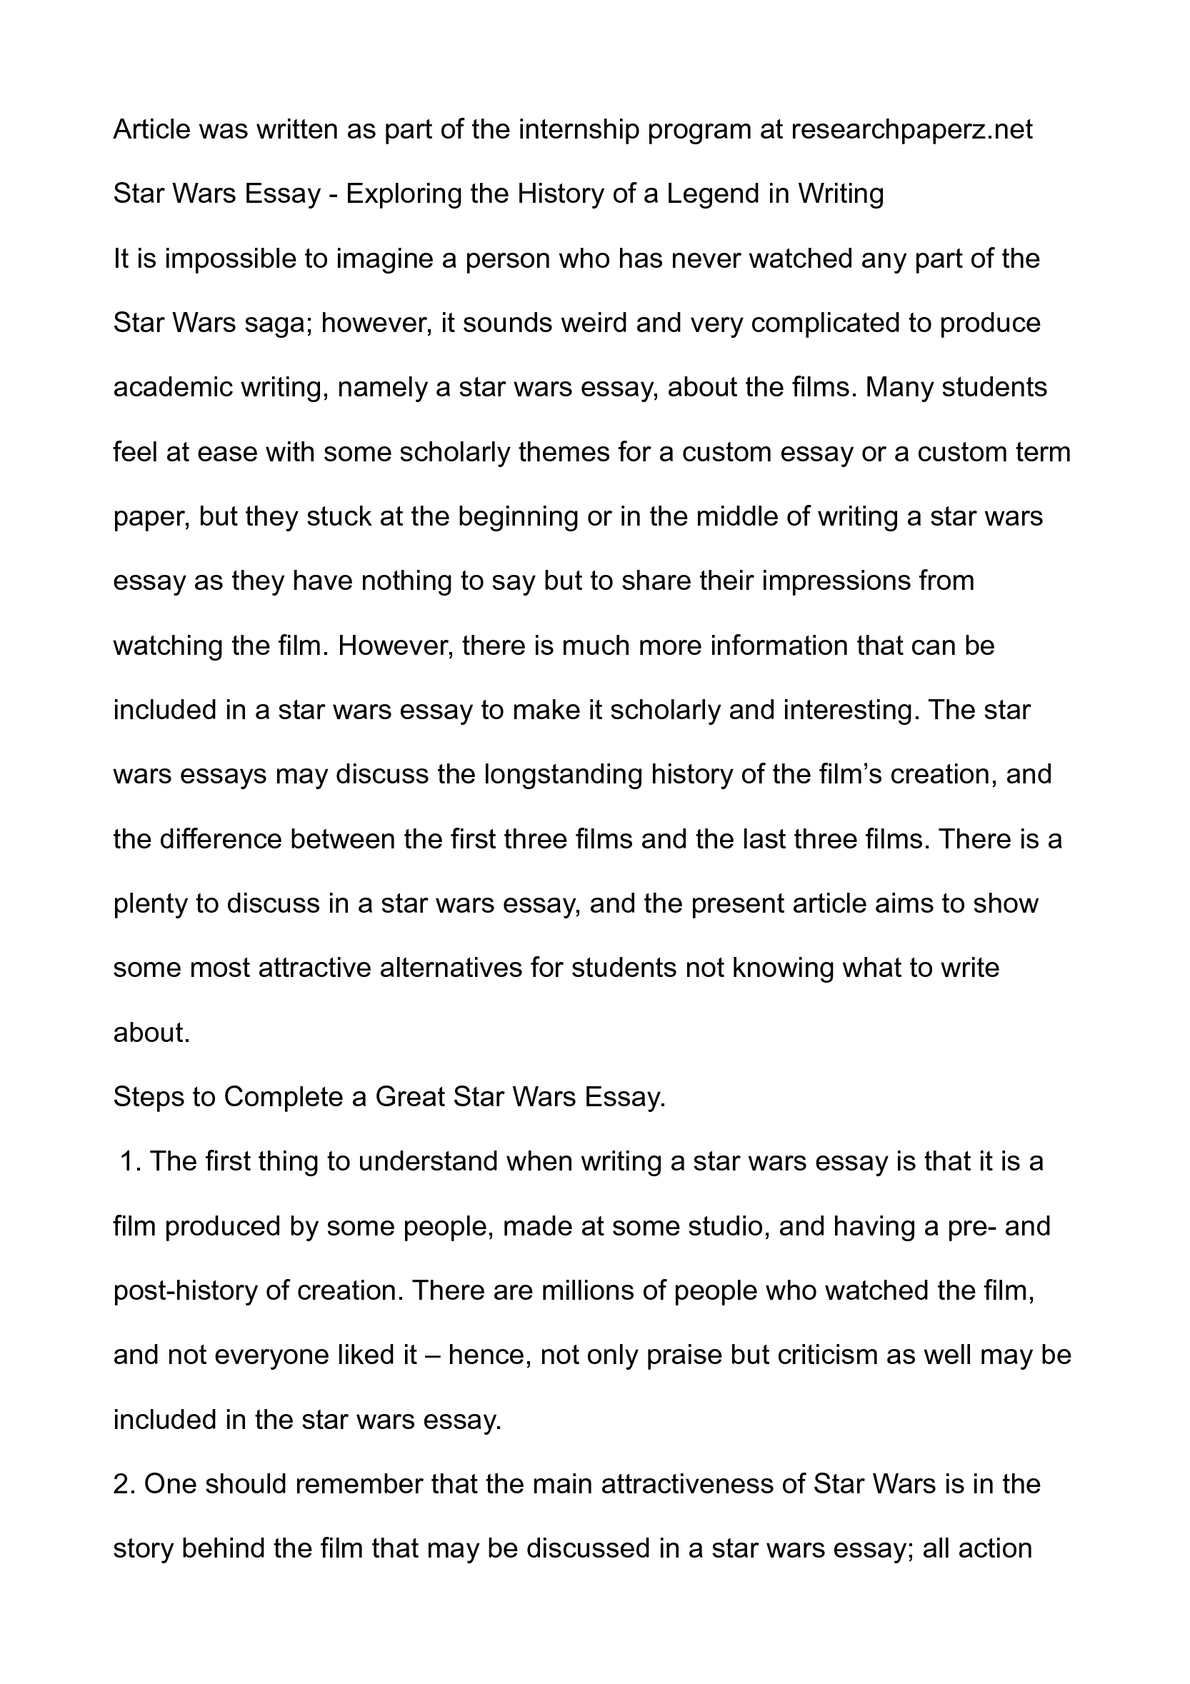 star wars essay exploring the history of a legend in  star wars essay exploring the history of a legend in writing